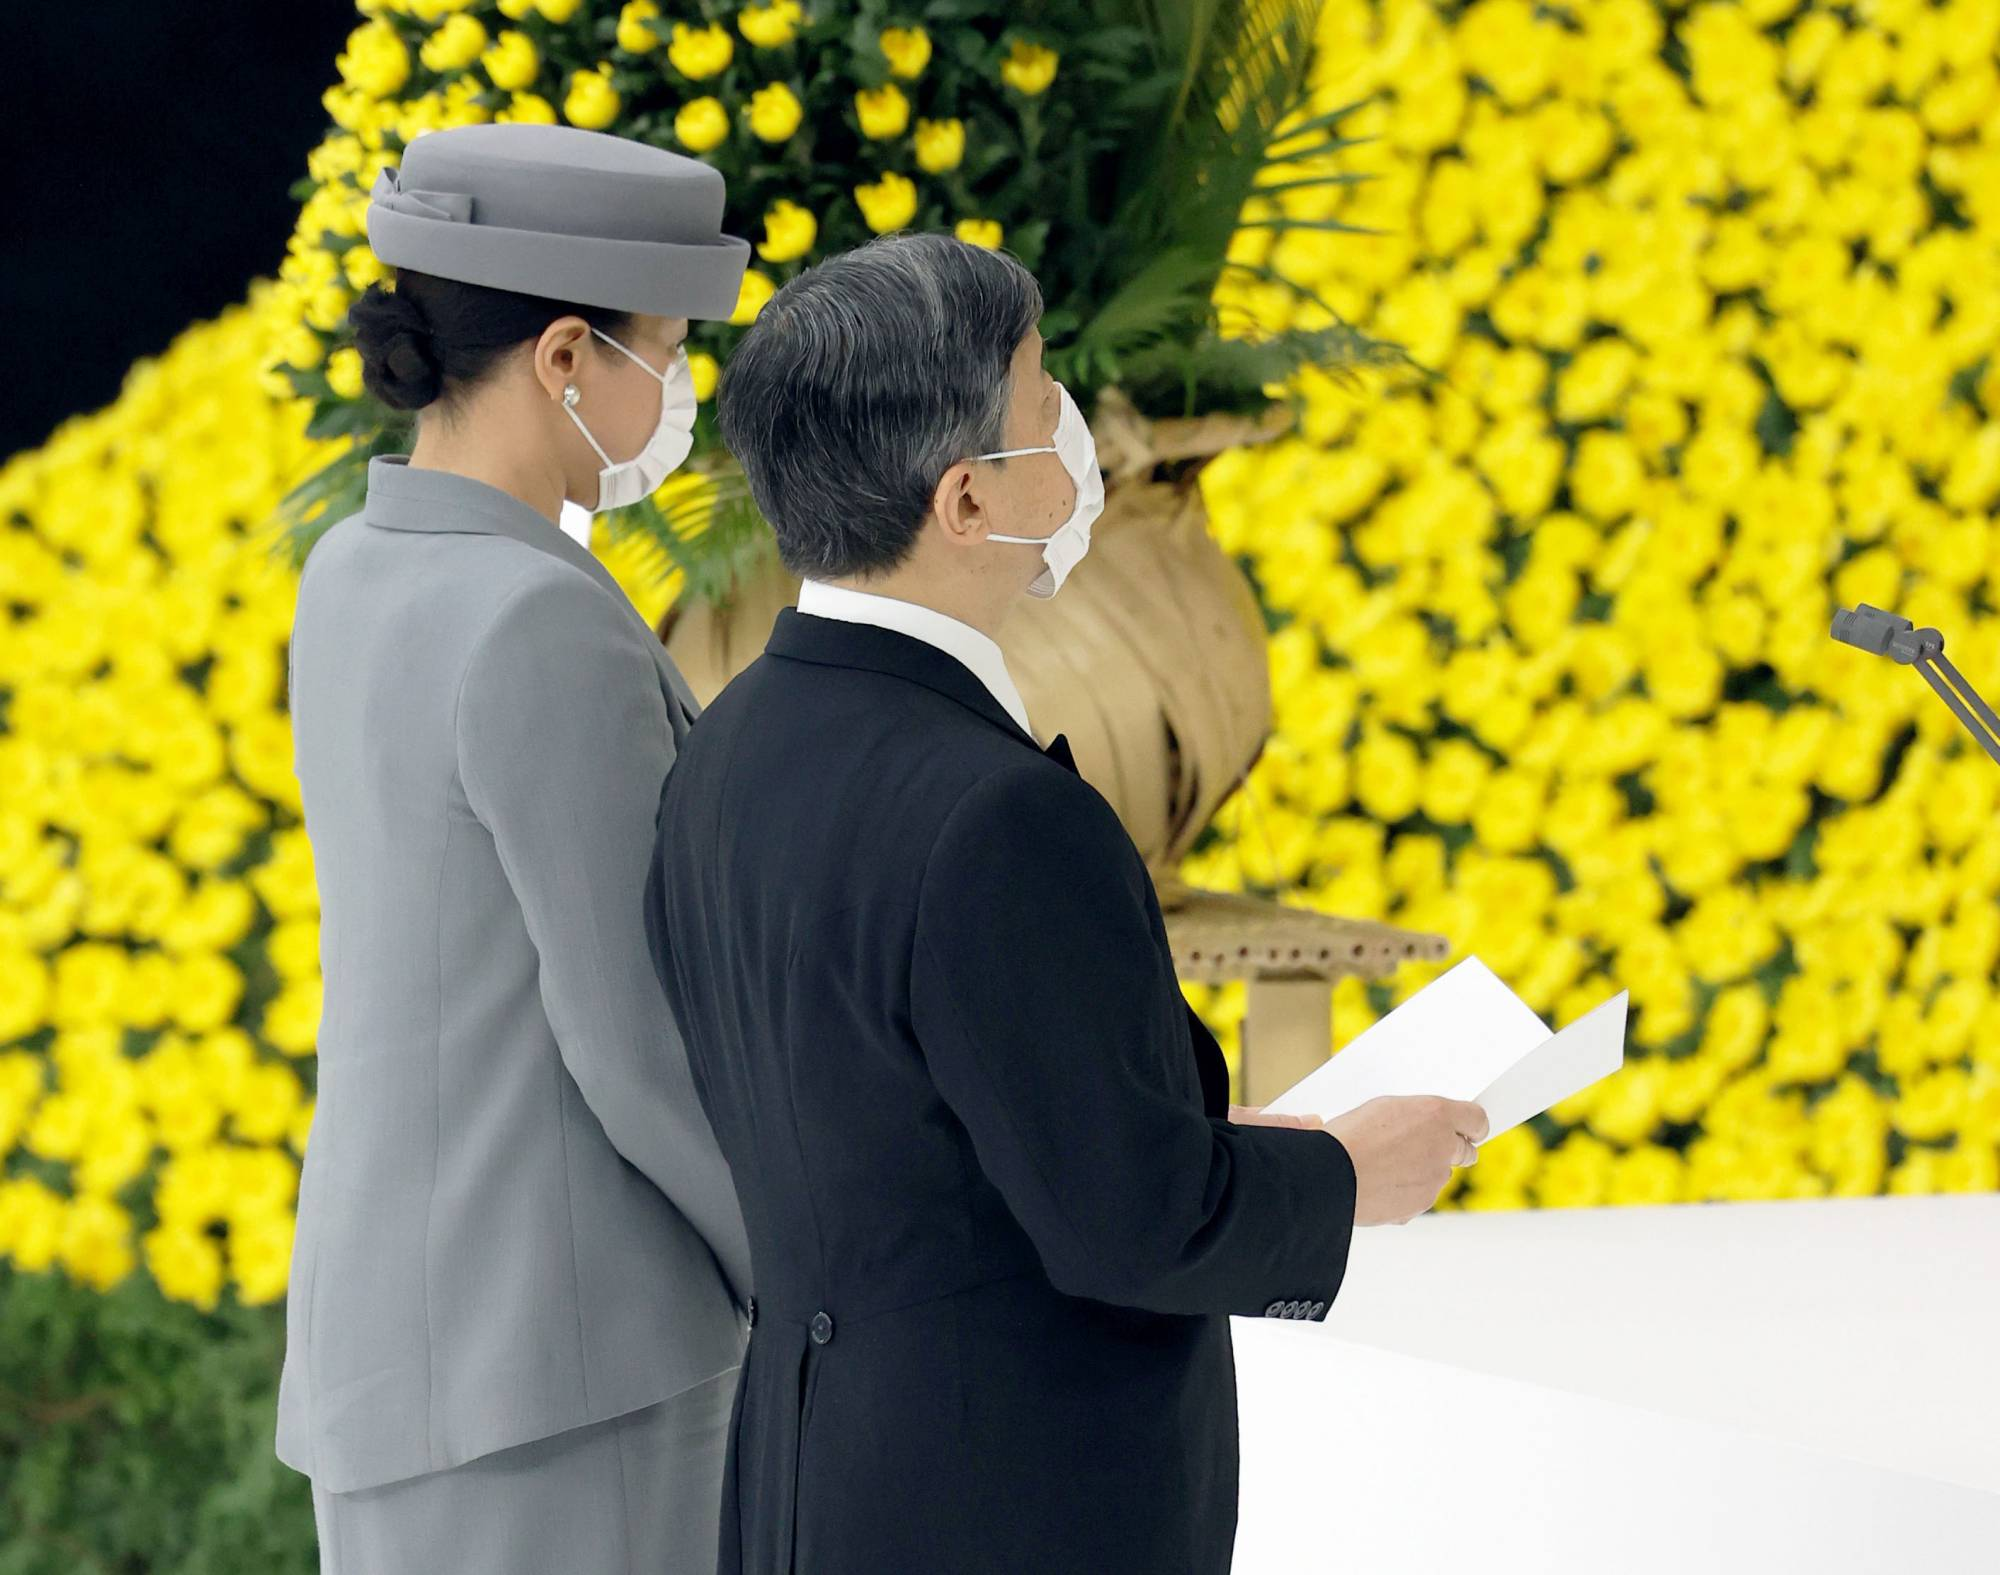 Emperor Naruhito (right) delivers remarks as he and Empress Masako attend a memorial ceremony marking the 76th anniversary of Japan's surrender in World War II held at Nippon Budokan hall in Tokyo on Sunday. | POOL / VIA KYODO